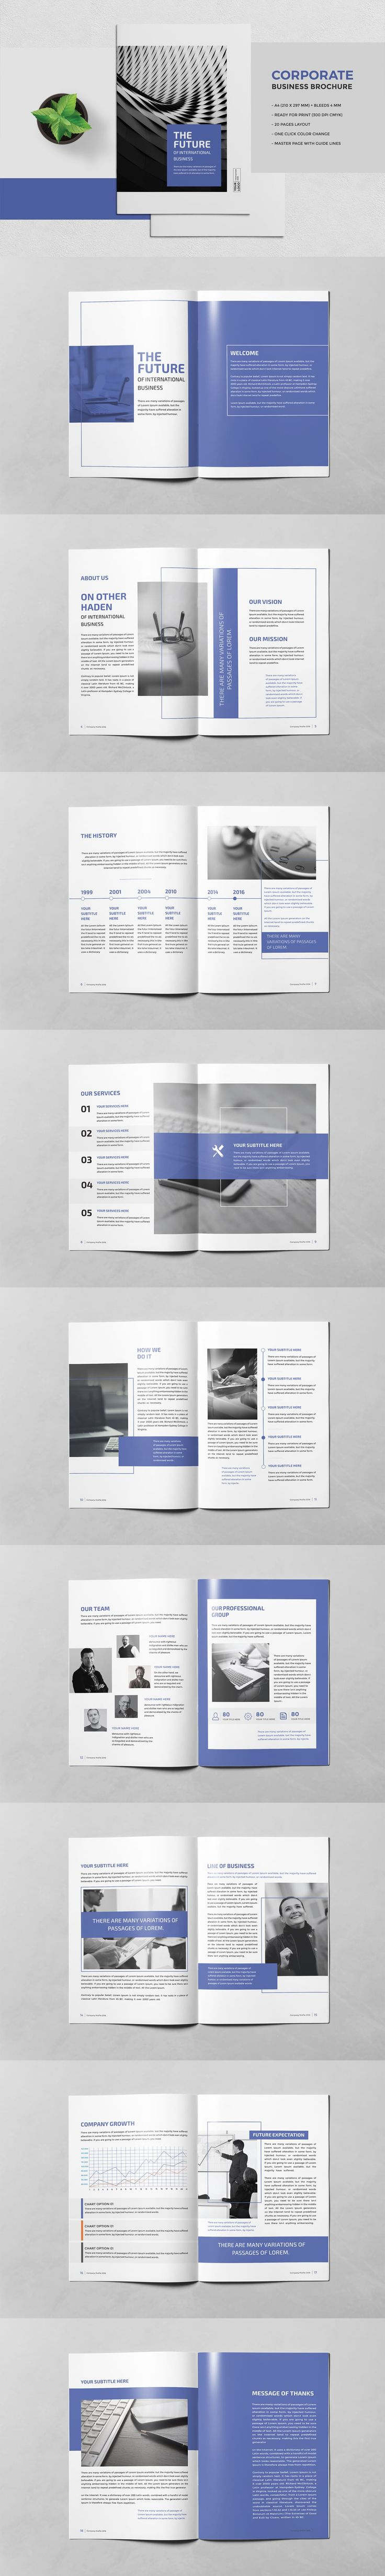 Get an attractive trifold or bifold brochure design Within 24 hours .... Knock me on skype: qketing